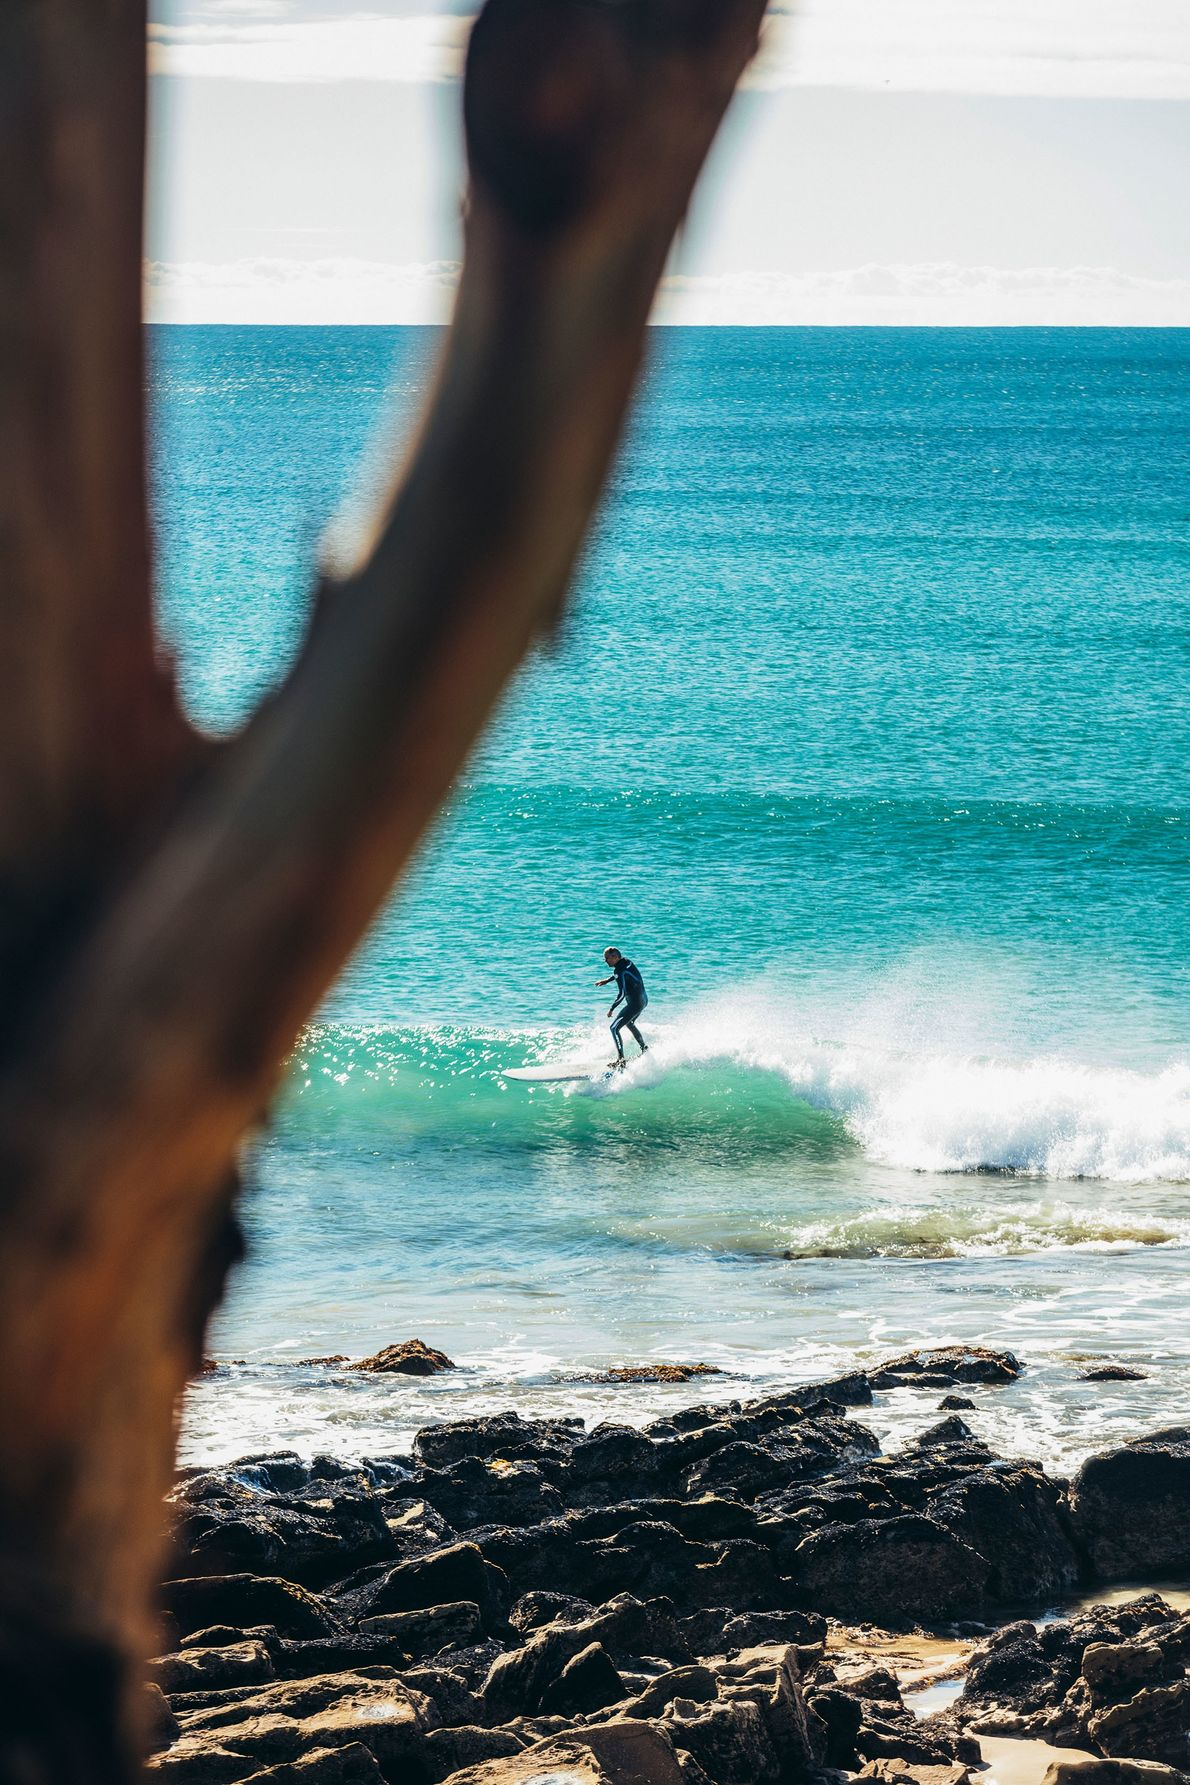 A lone surfer in the waters off Lorne, a seaside town in Victoria.